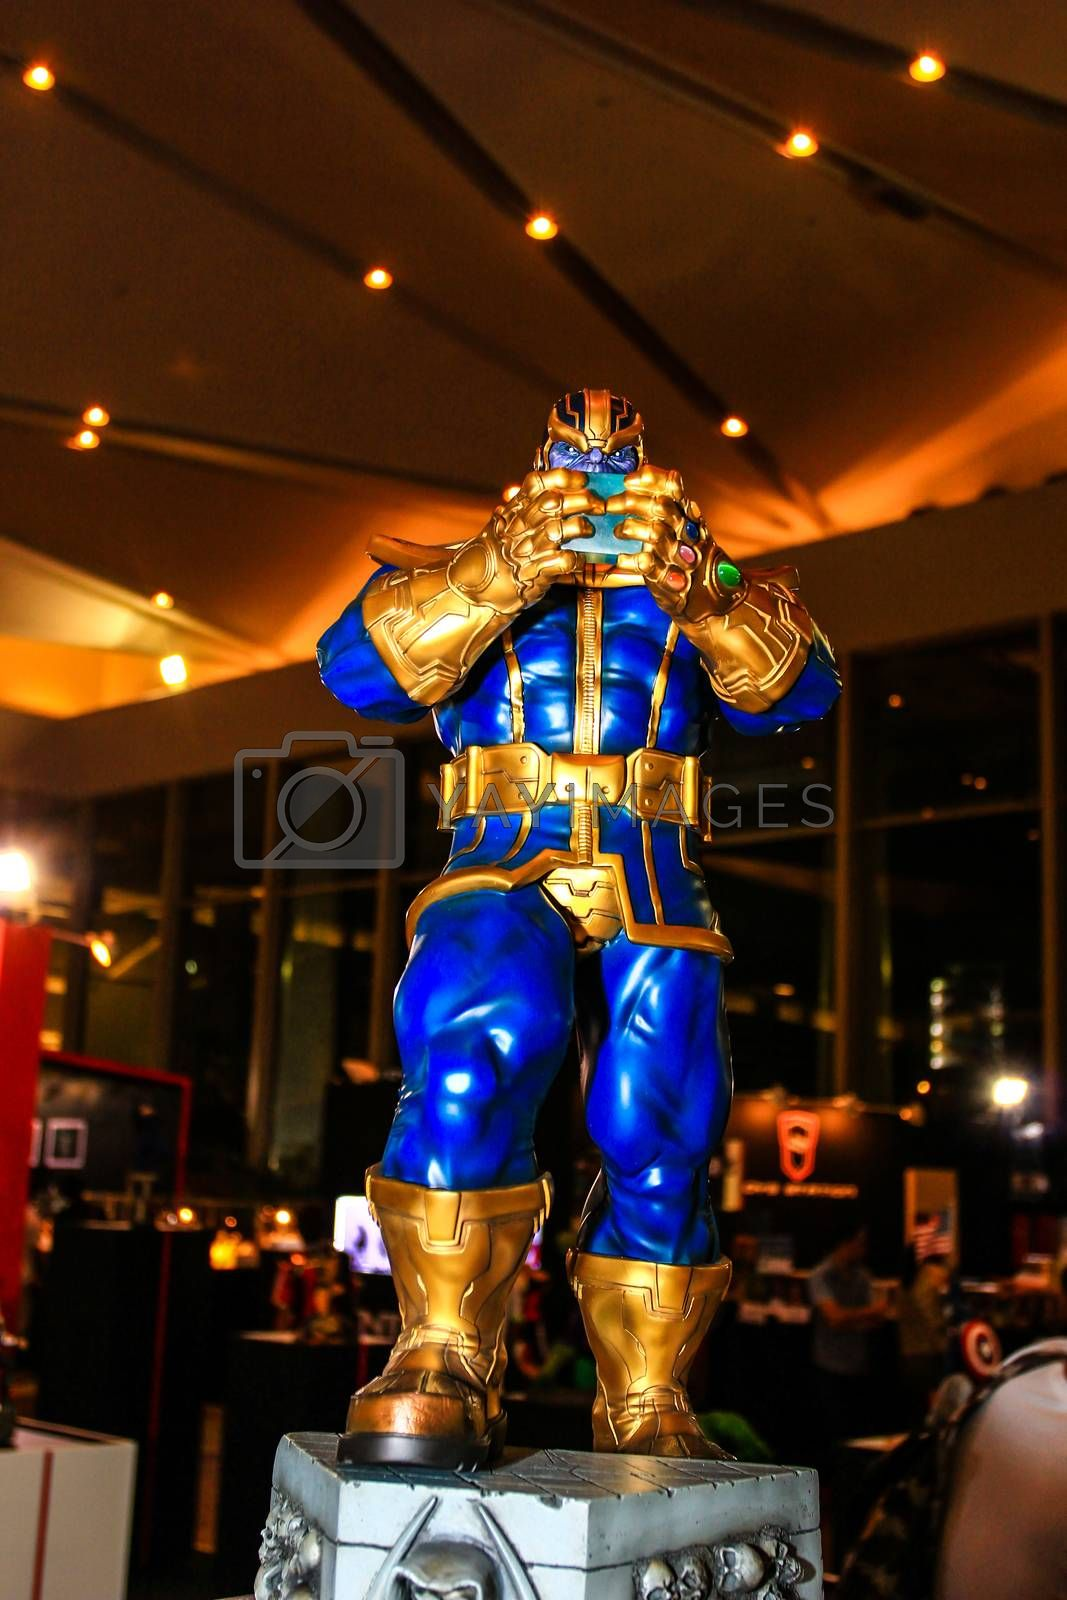 Royalty free image of A model of the character  Thanos from the movies and comics by redthirteen